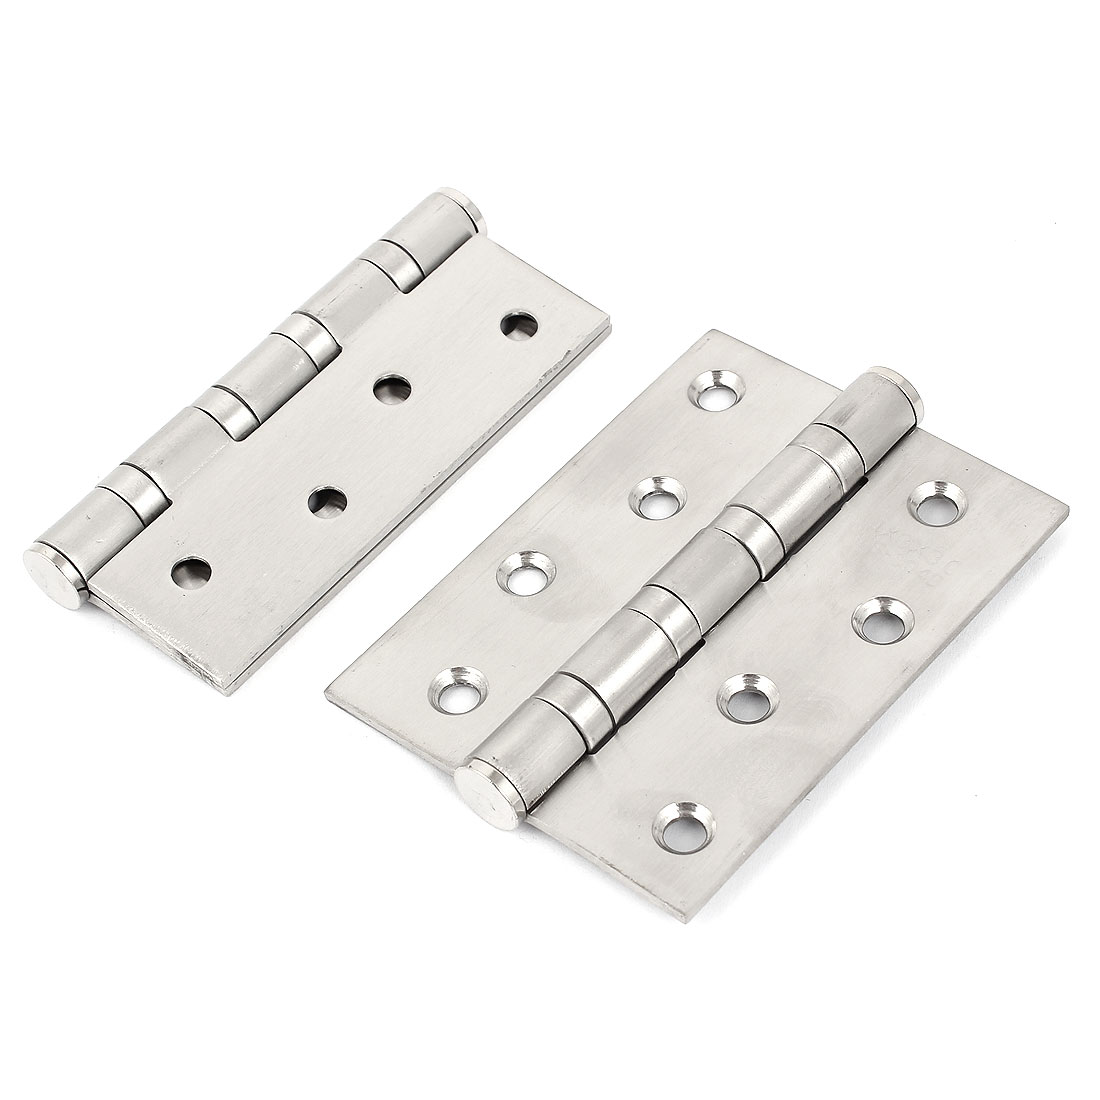 "4"" Long 3"" Width 3mm Thickness Stainless Steel Cabinet Door Butt Hinge 2pcs"